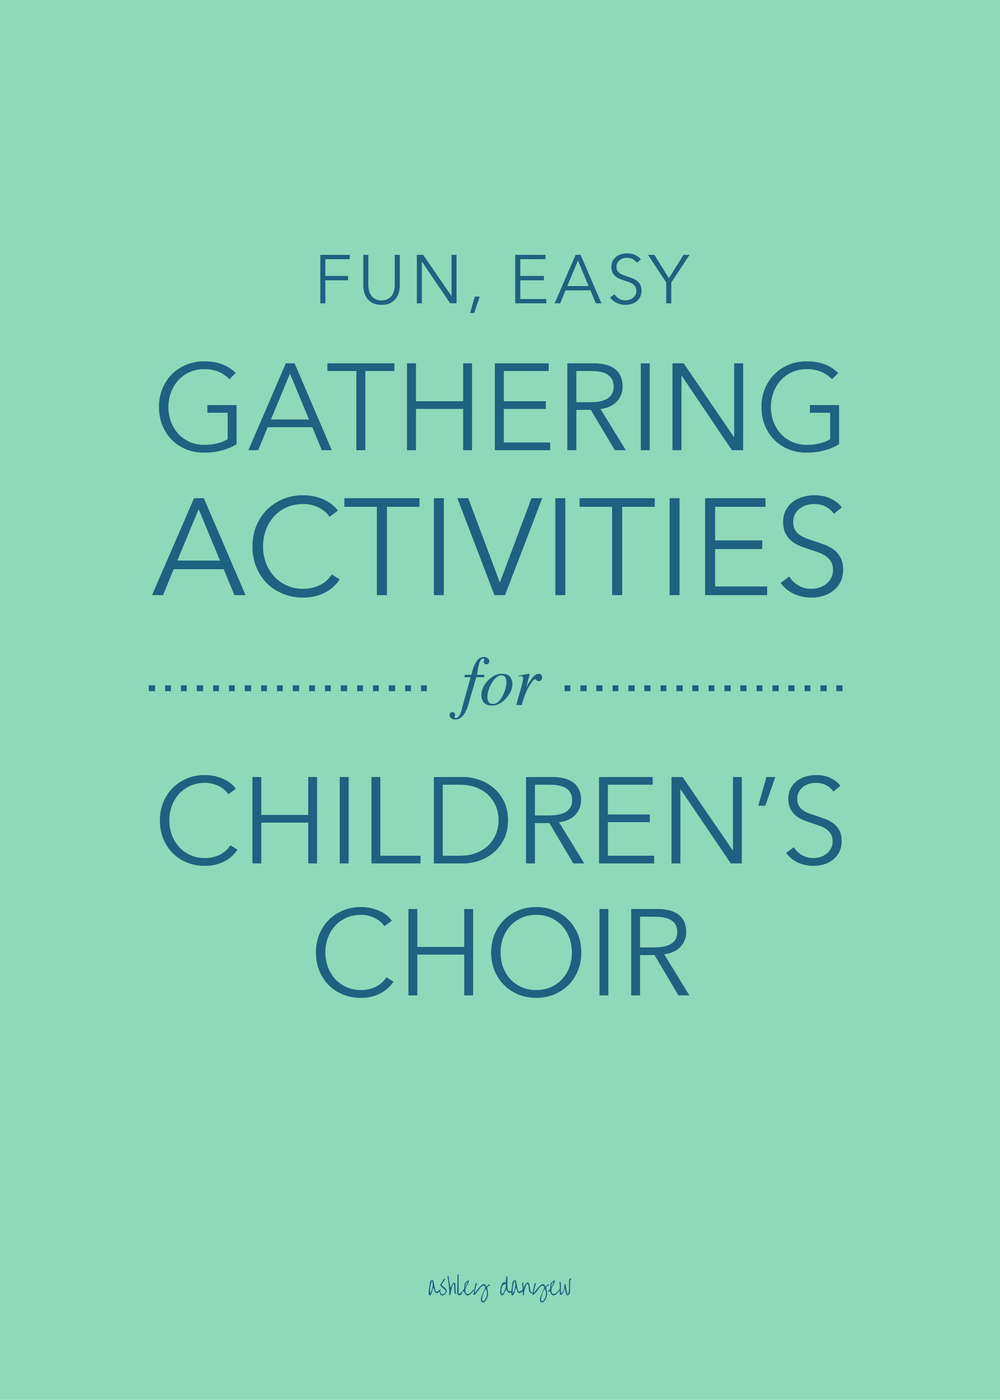 Copy of Fun, Easy Gathering Activities for Children's Choir